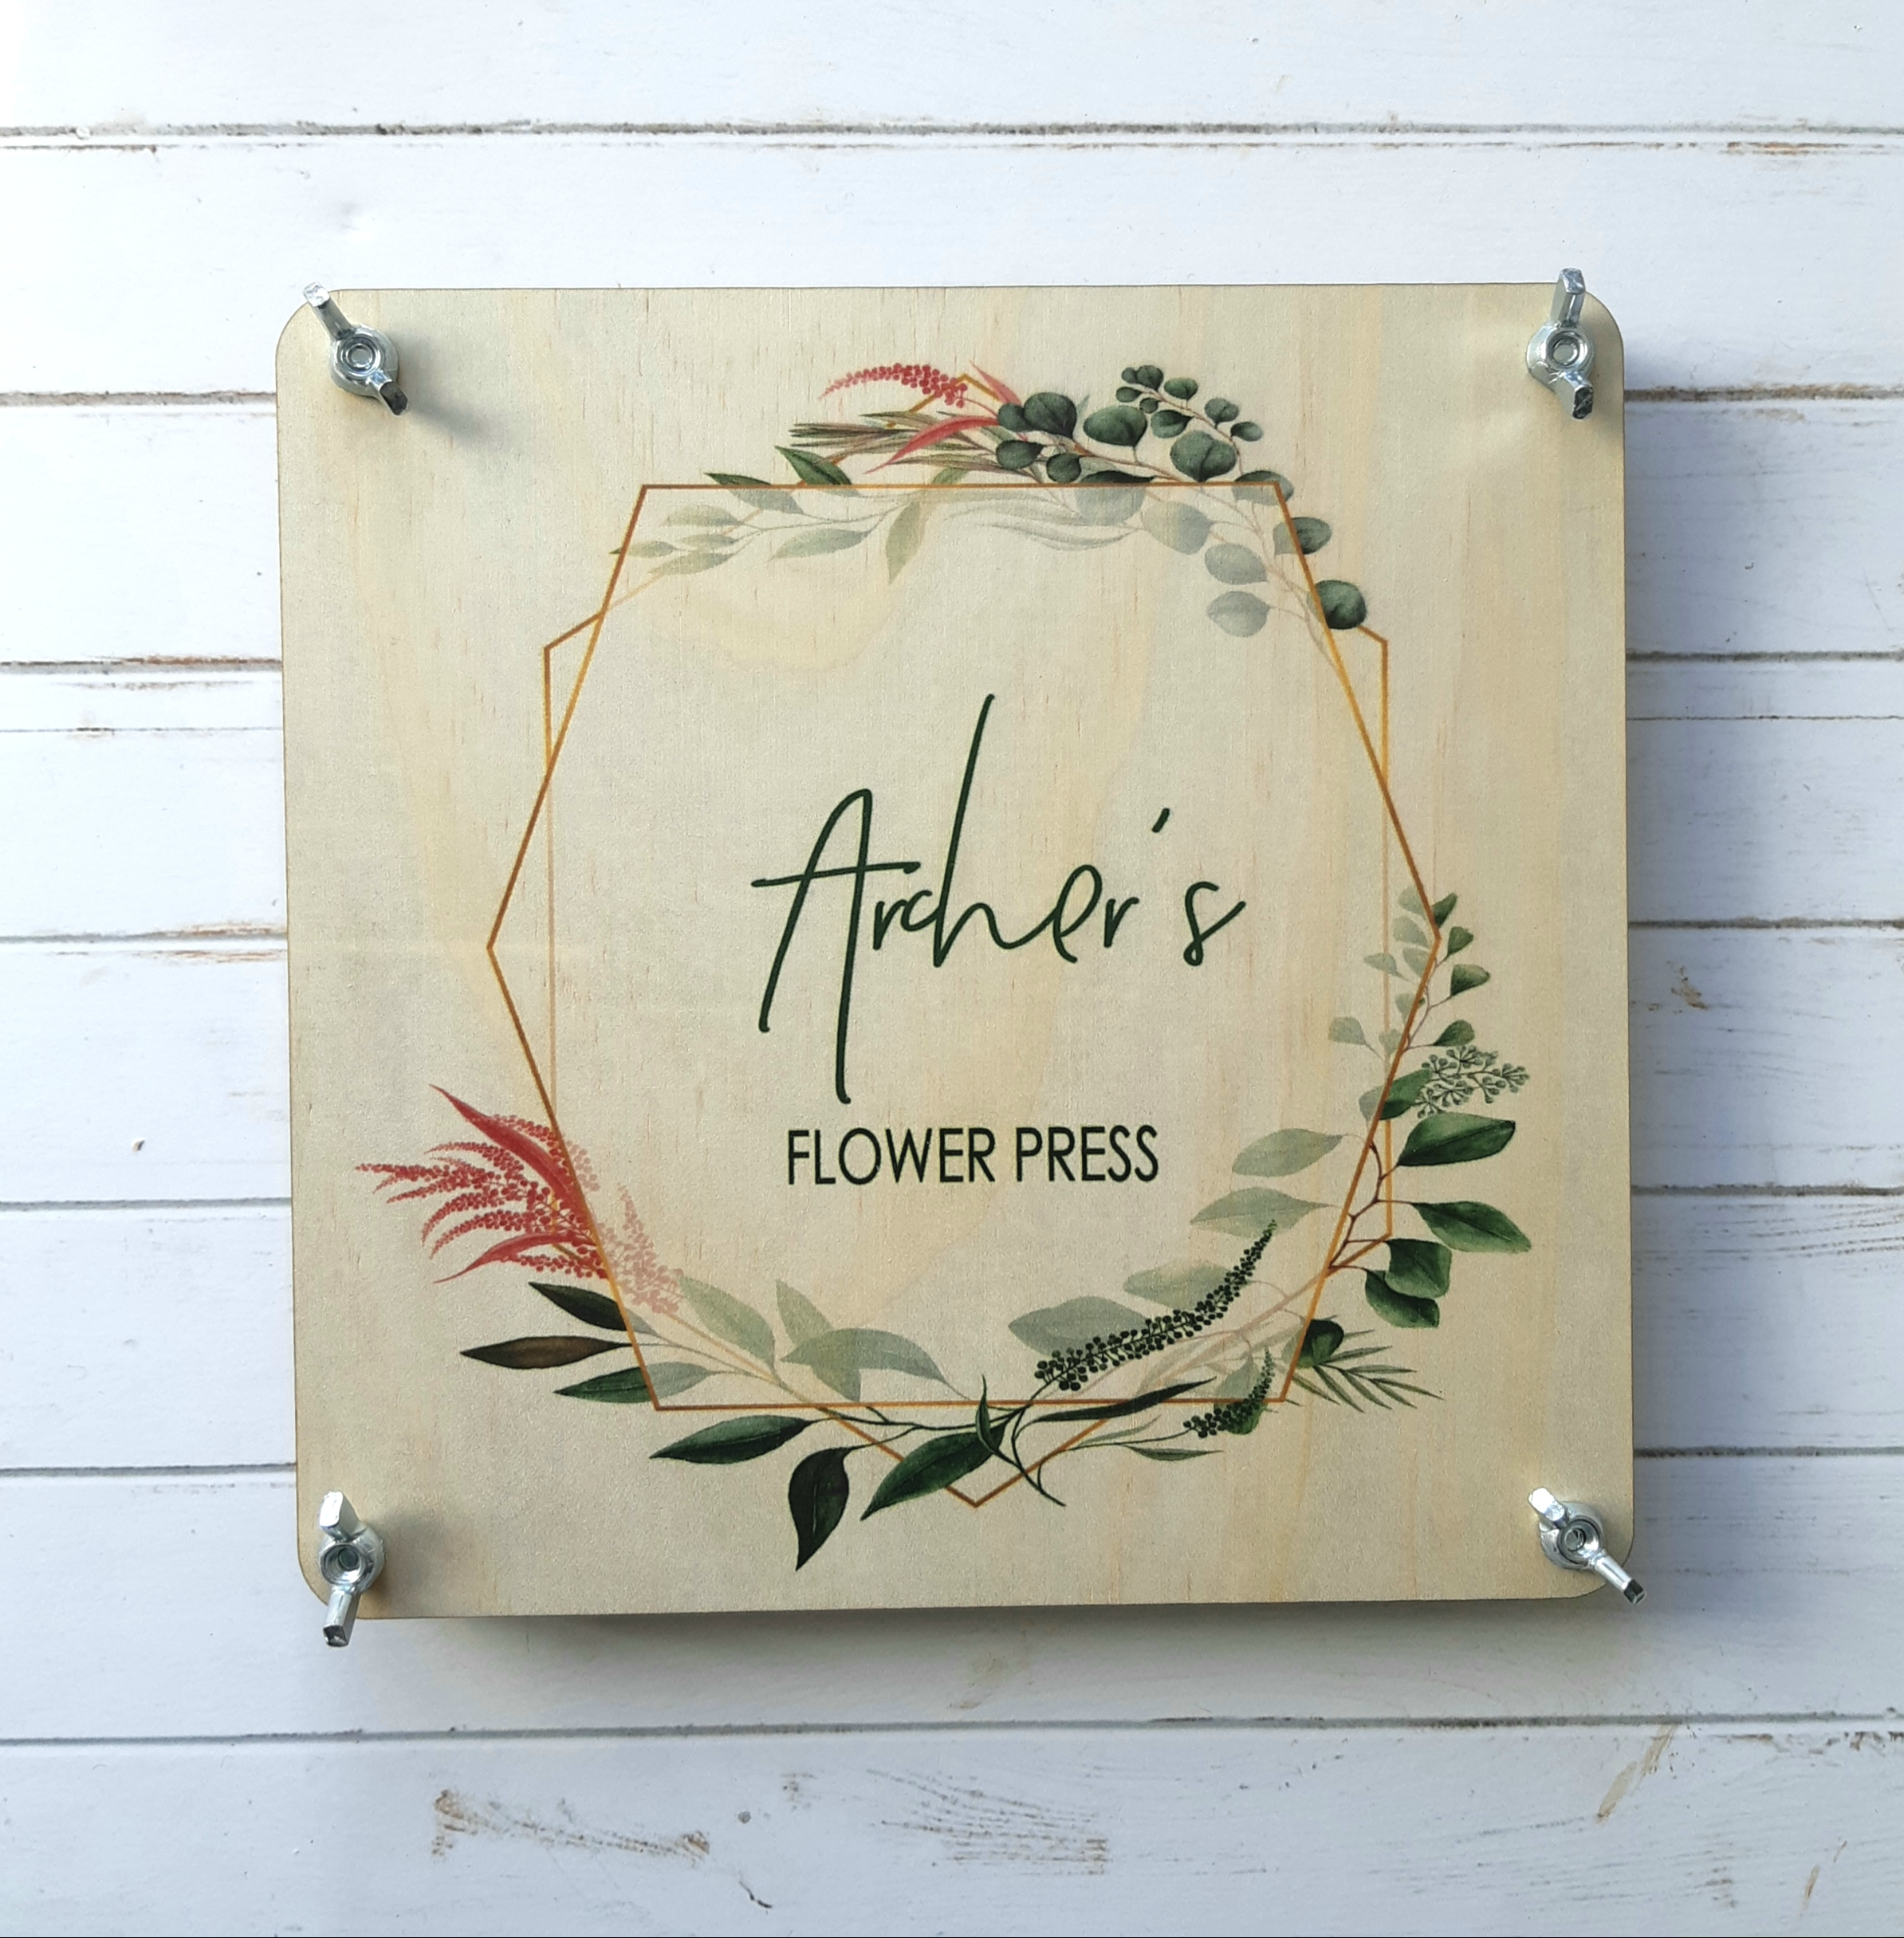 Enjoy hours of nature activities and crafting with our keepsake flower presses